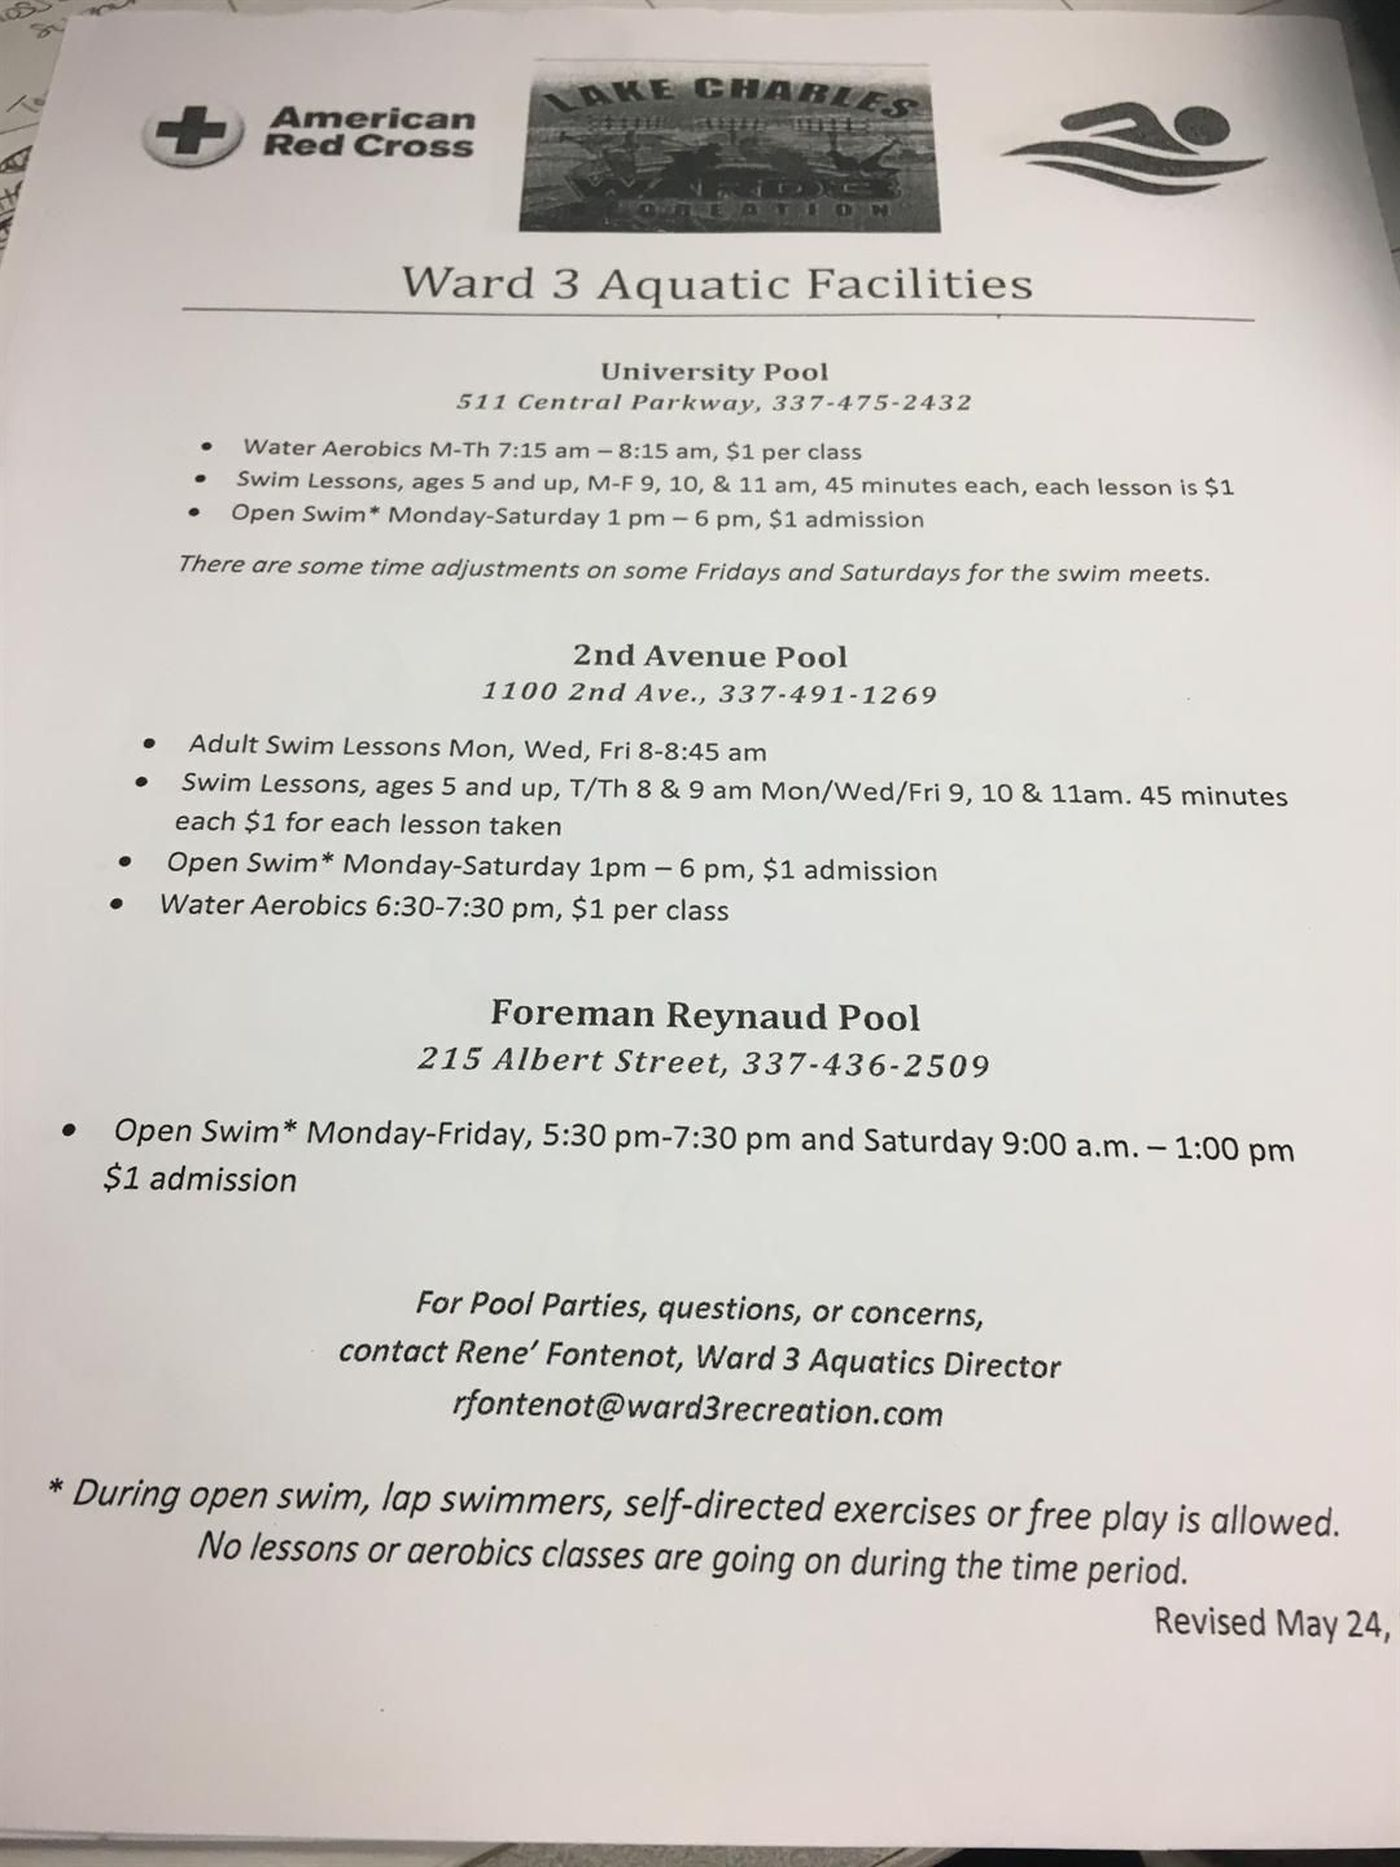 Ward 3 Recreation Offering Dollar Swim Classes Again This Summer